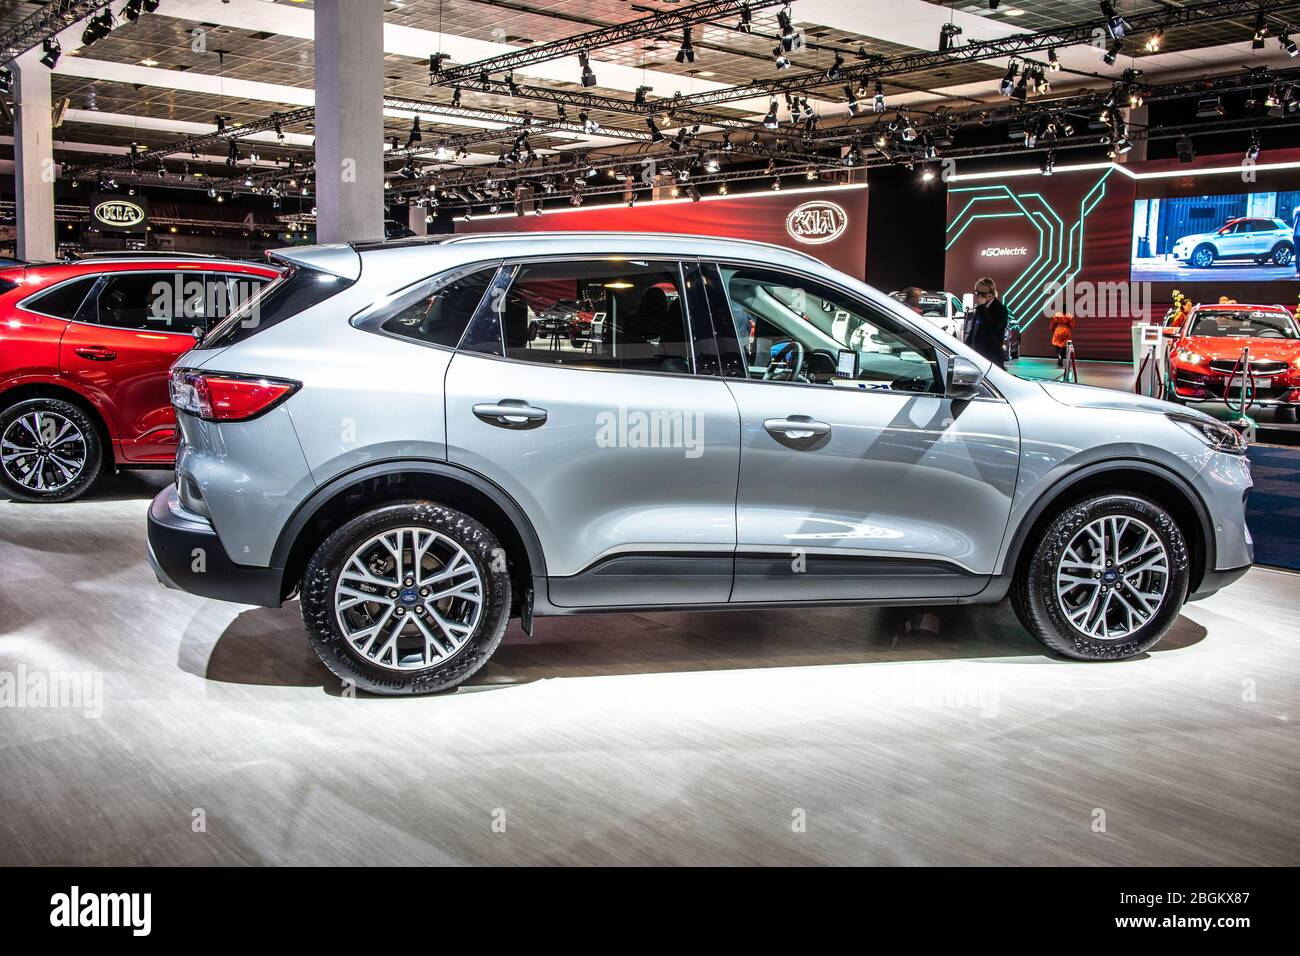 Ford Kuga High Resolution Stock Photography And Images Alamy